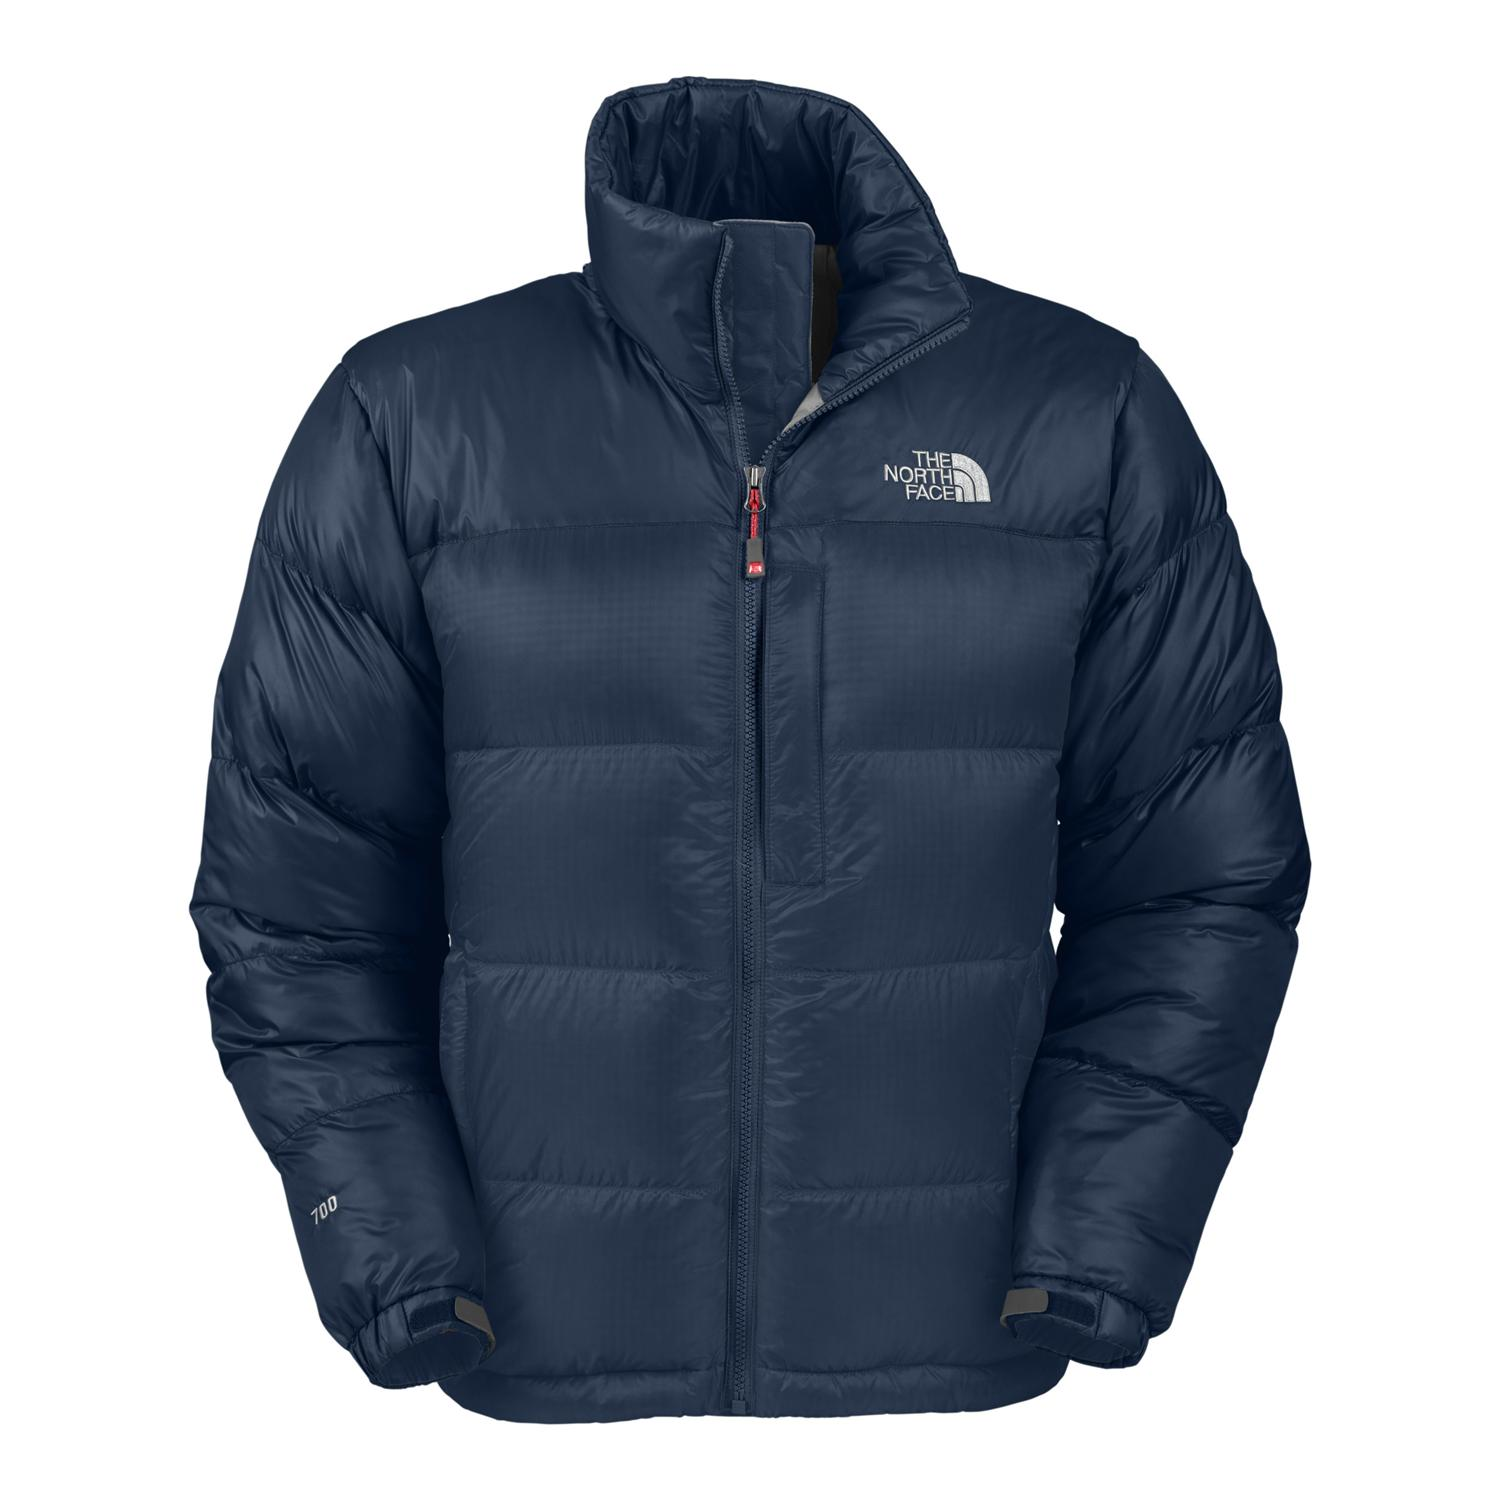 Discount North Face Outlet Online,Shop Deals for Cheap North Face jackets - Upto 60% Off!Top Quality,Great Selection And Expert Advice You Can Trust% Satisfaction Guarantee.